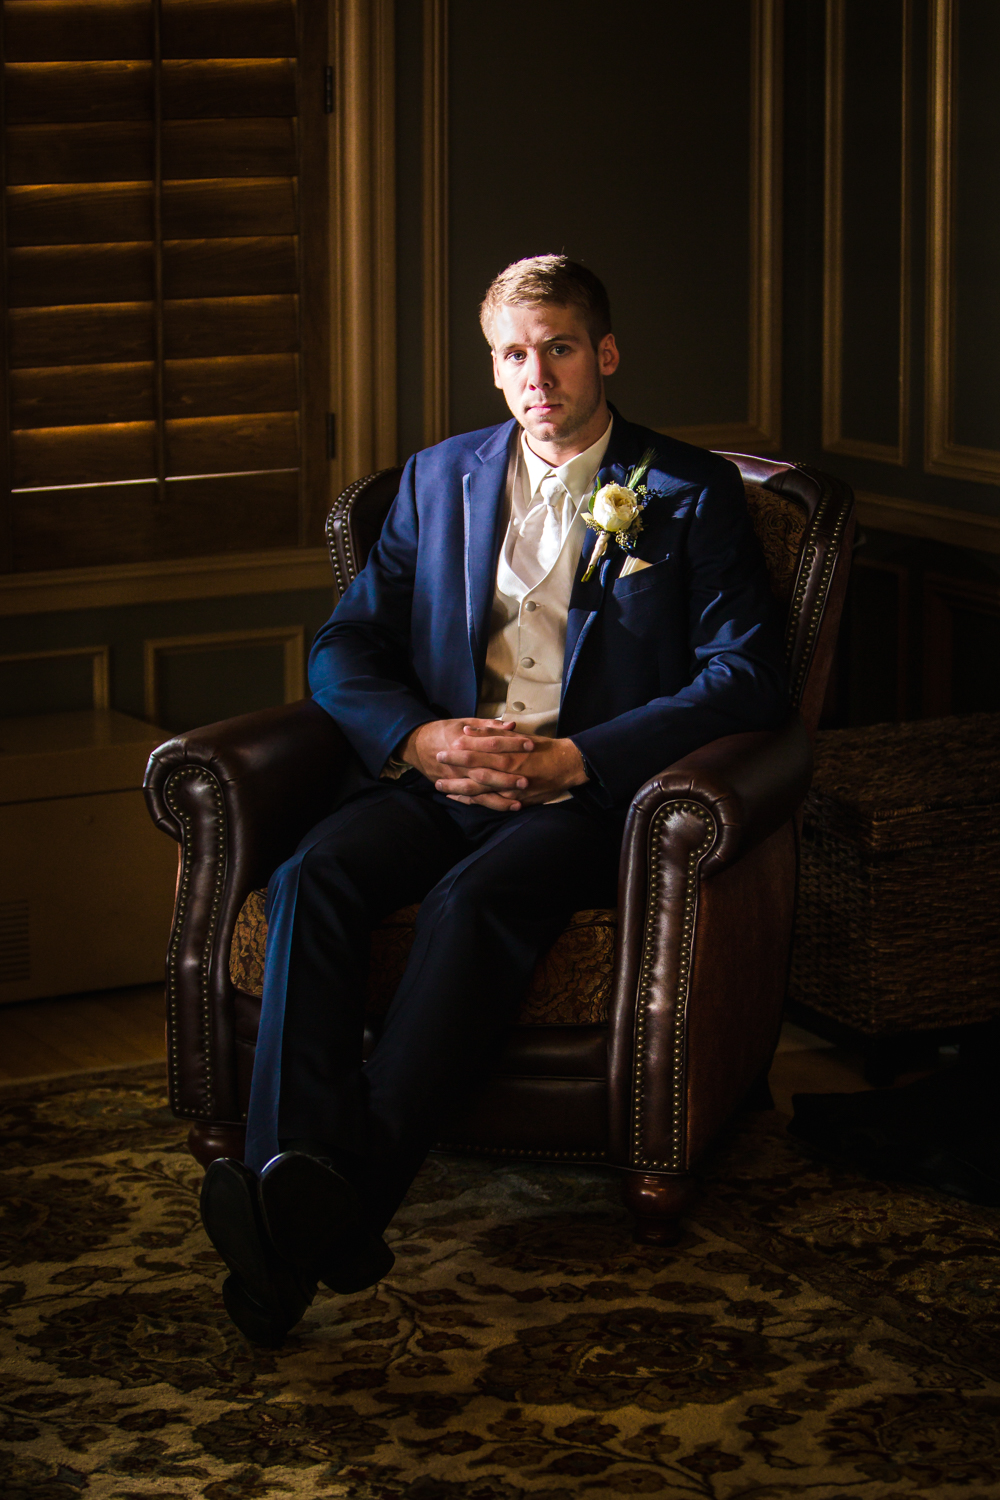 Groom getting ready. Photographed by JMGant Photography, Denver Colorado wedding photographer.